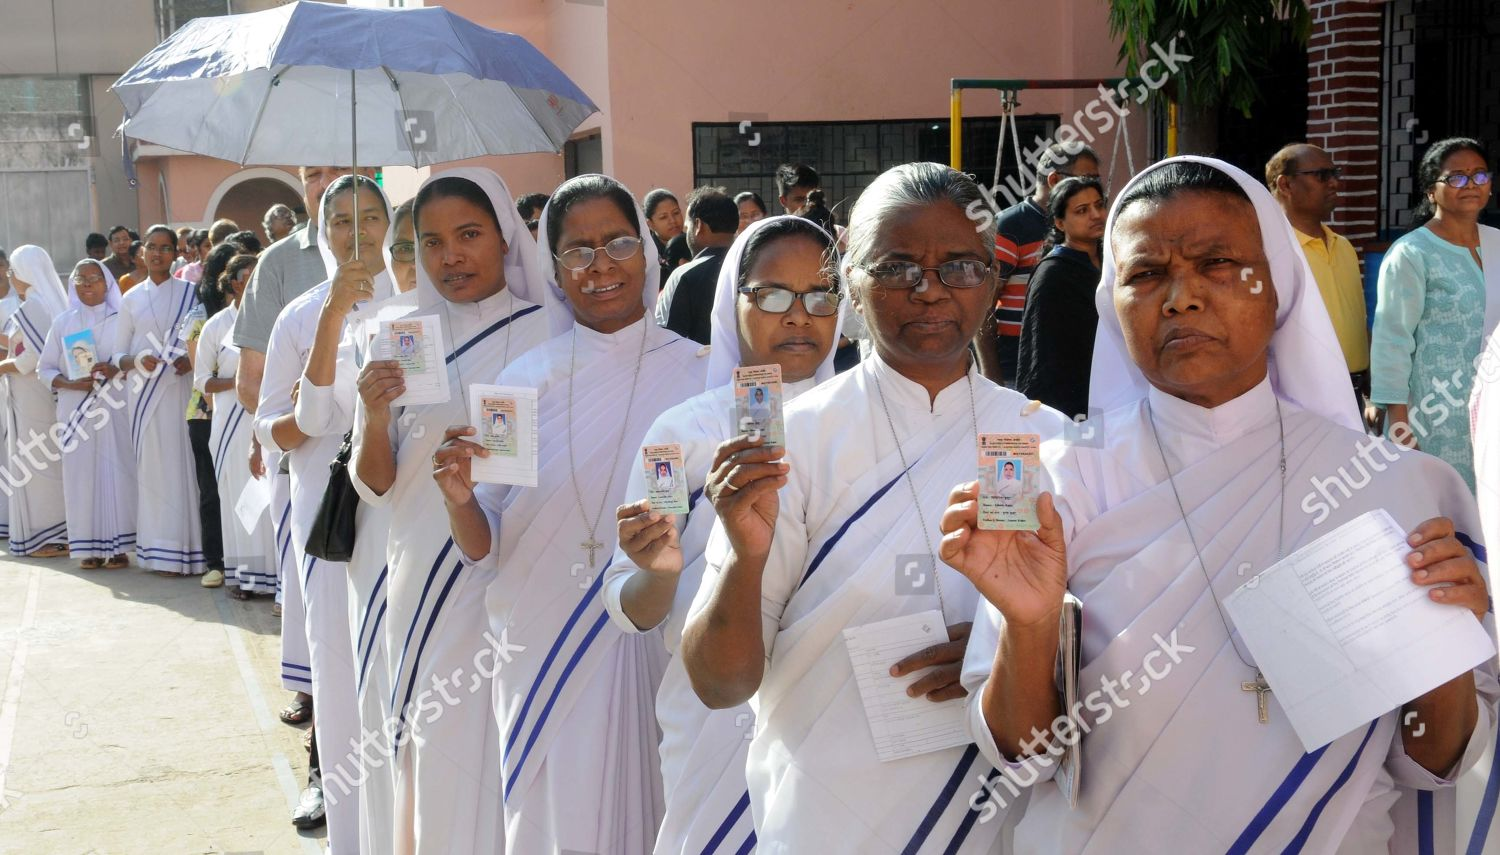 Nuns Catholic missionary stand queue cast their Editorial